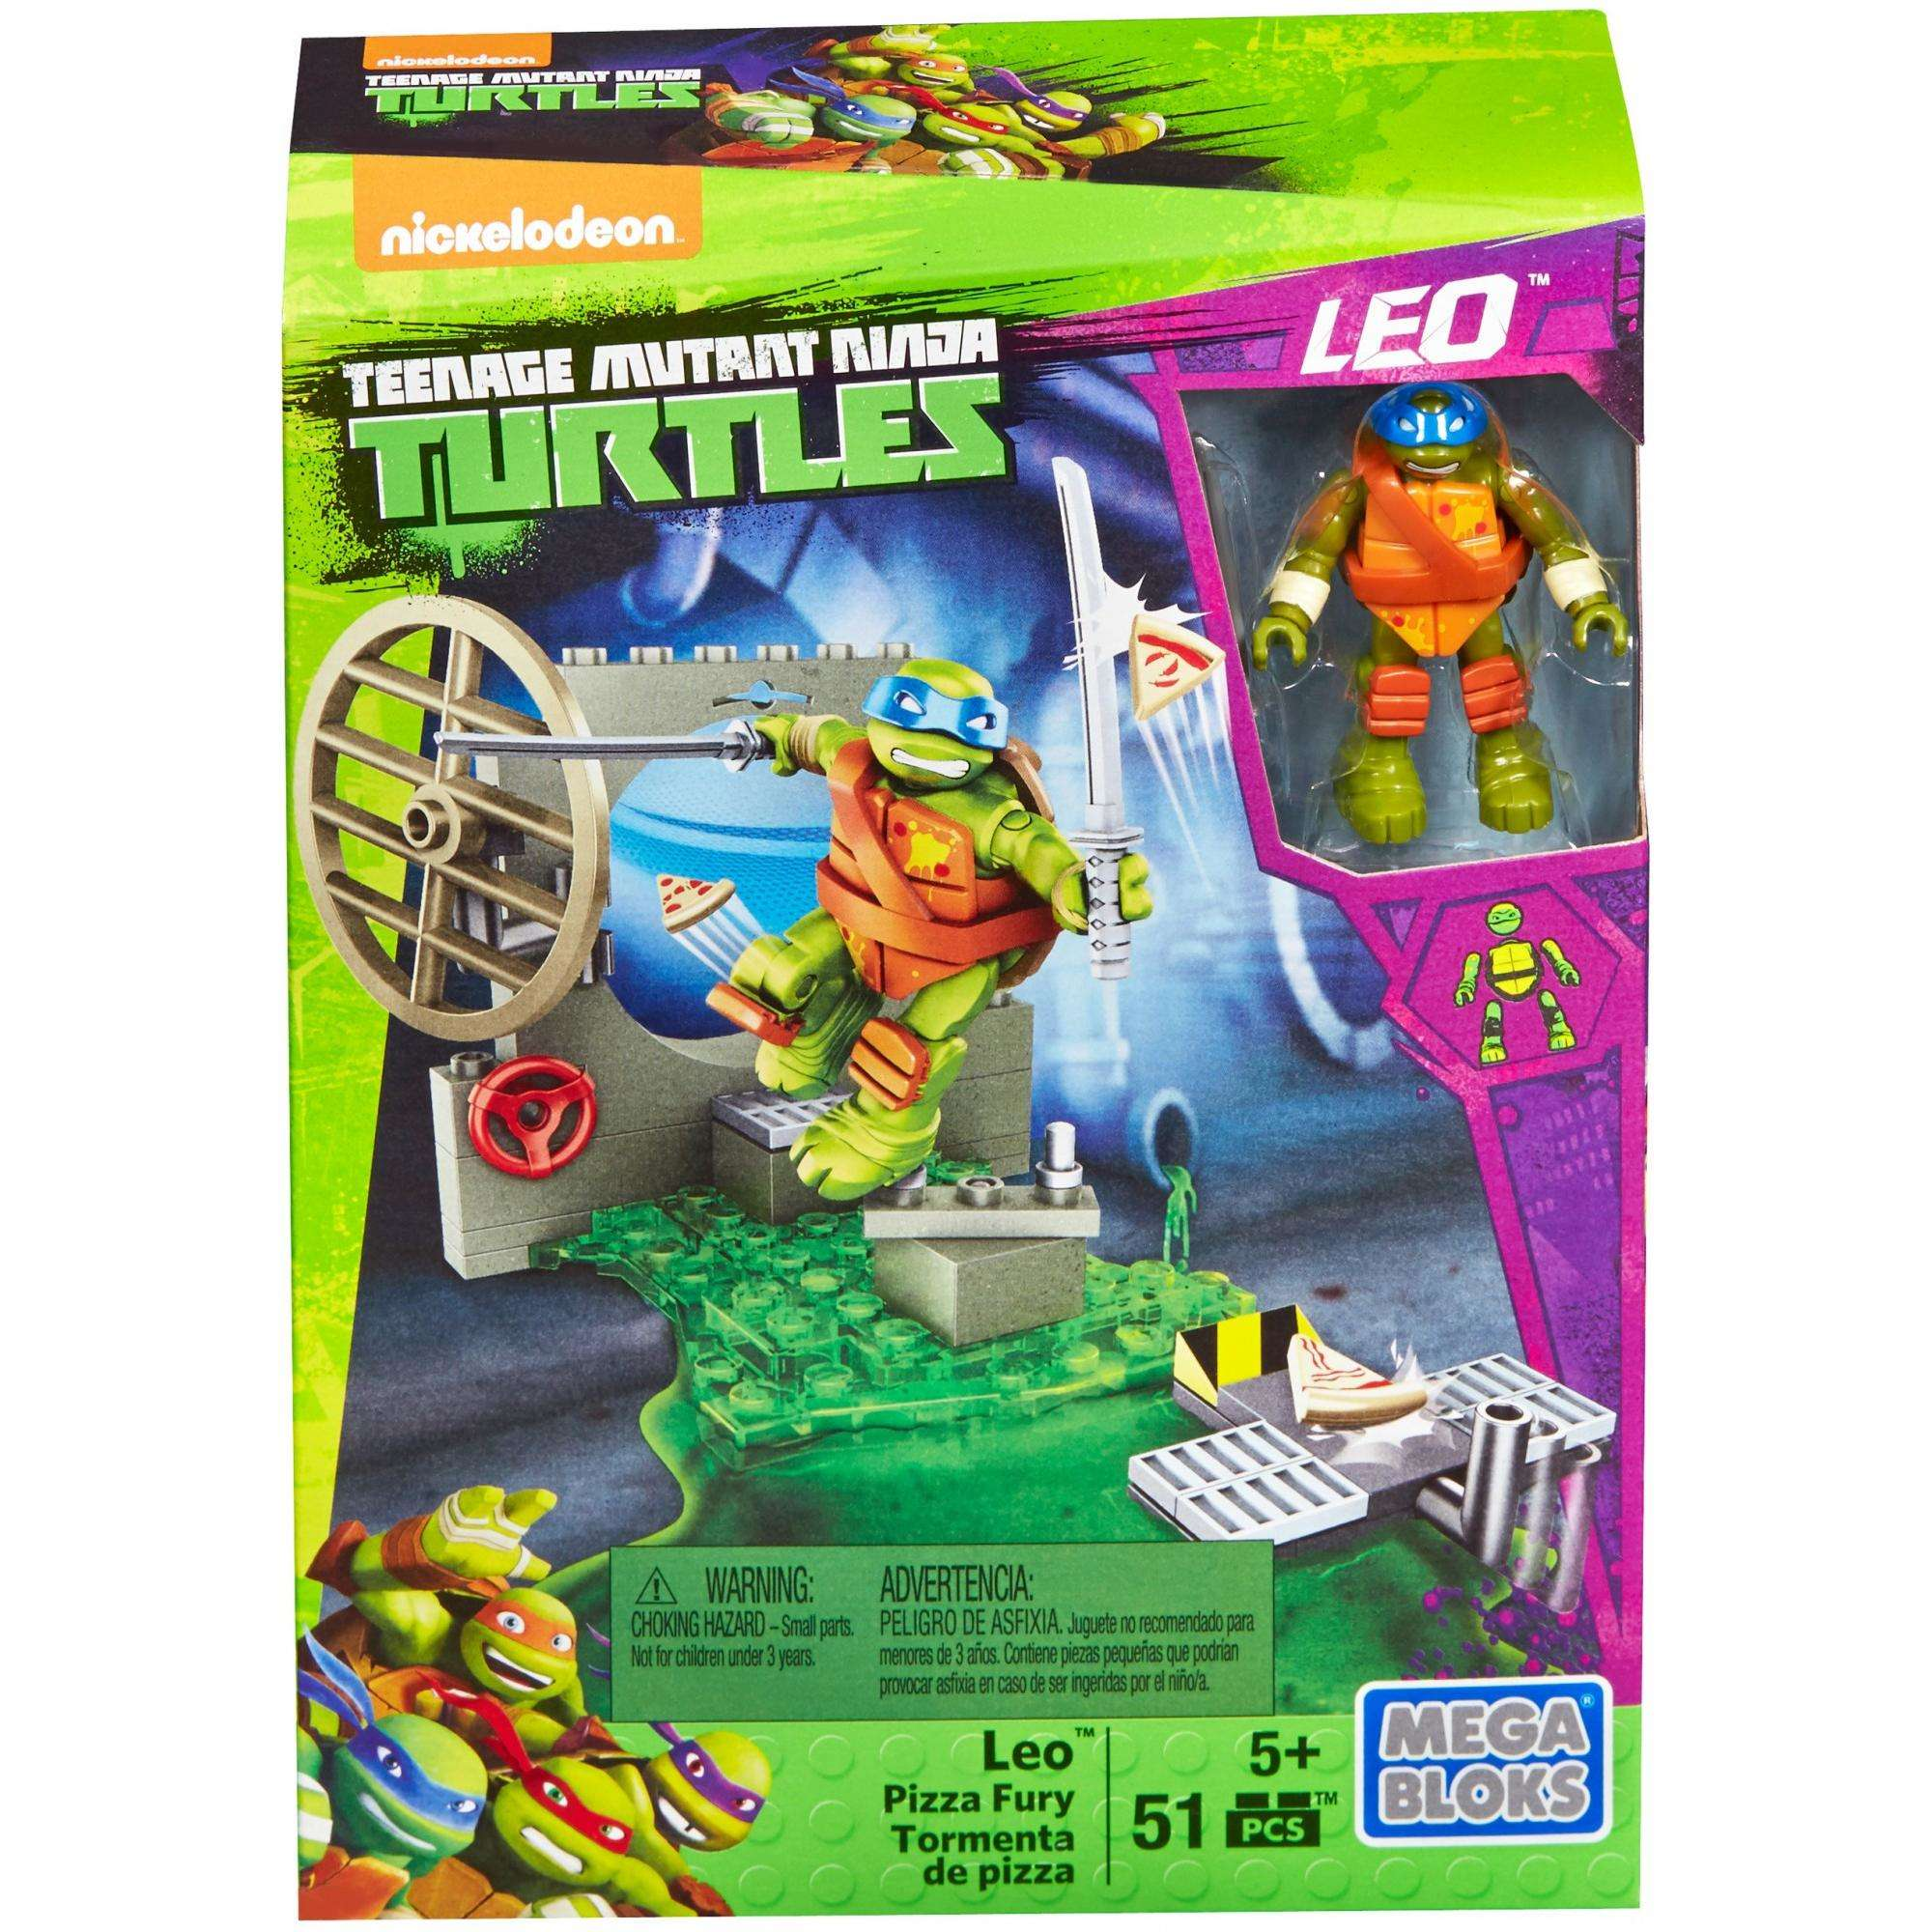 Mega Bloks Teenage Mutant Ninja Turtles Leo Pizza Fury by Mattel